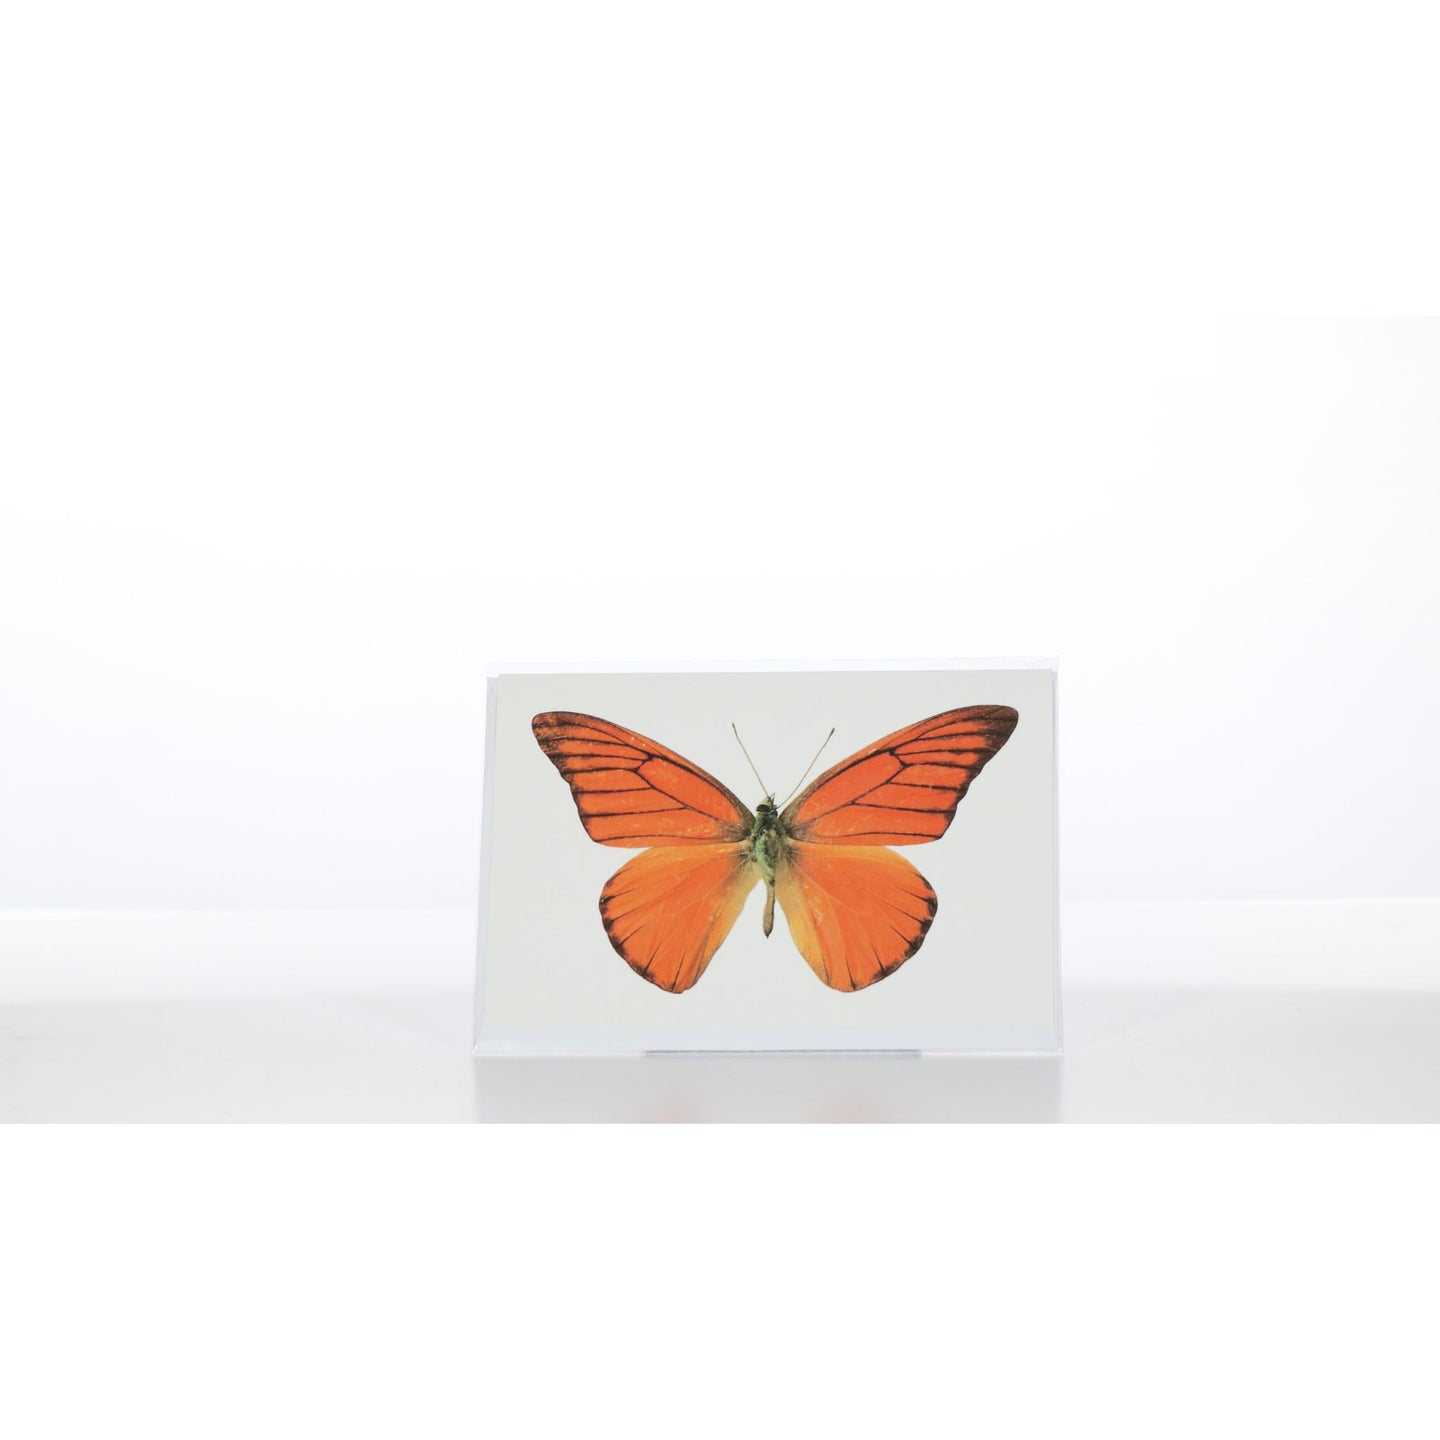 Greeting Card GC21 - Insecta Etcetera